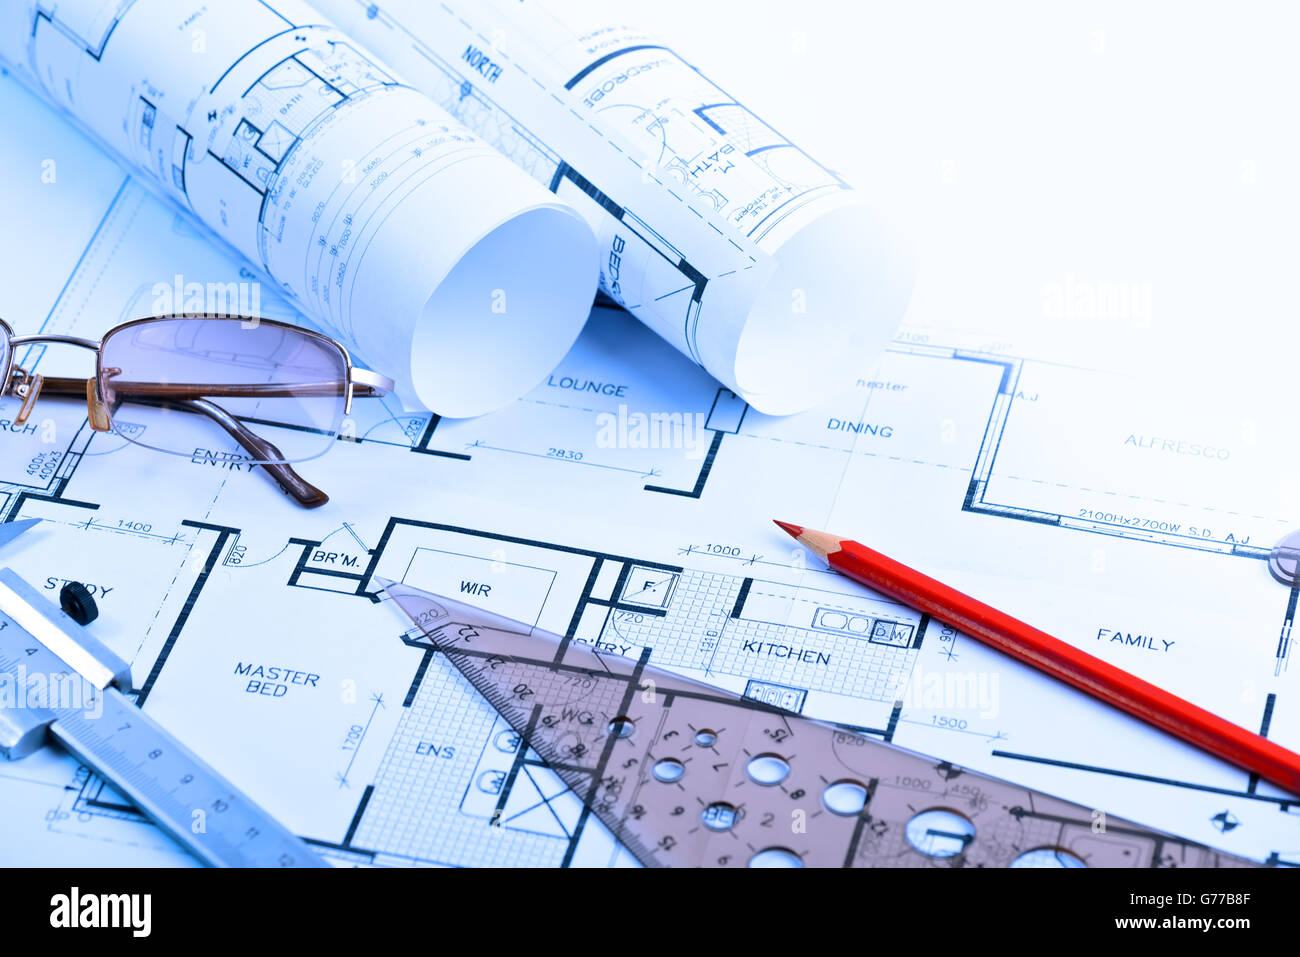 Architectural blueprints of new home with copy space for message - Stock Image